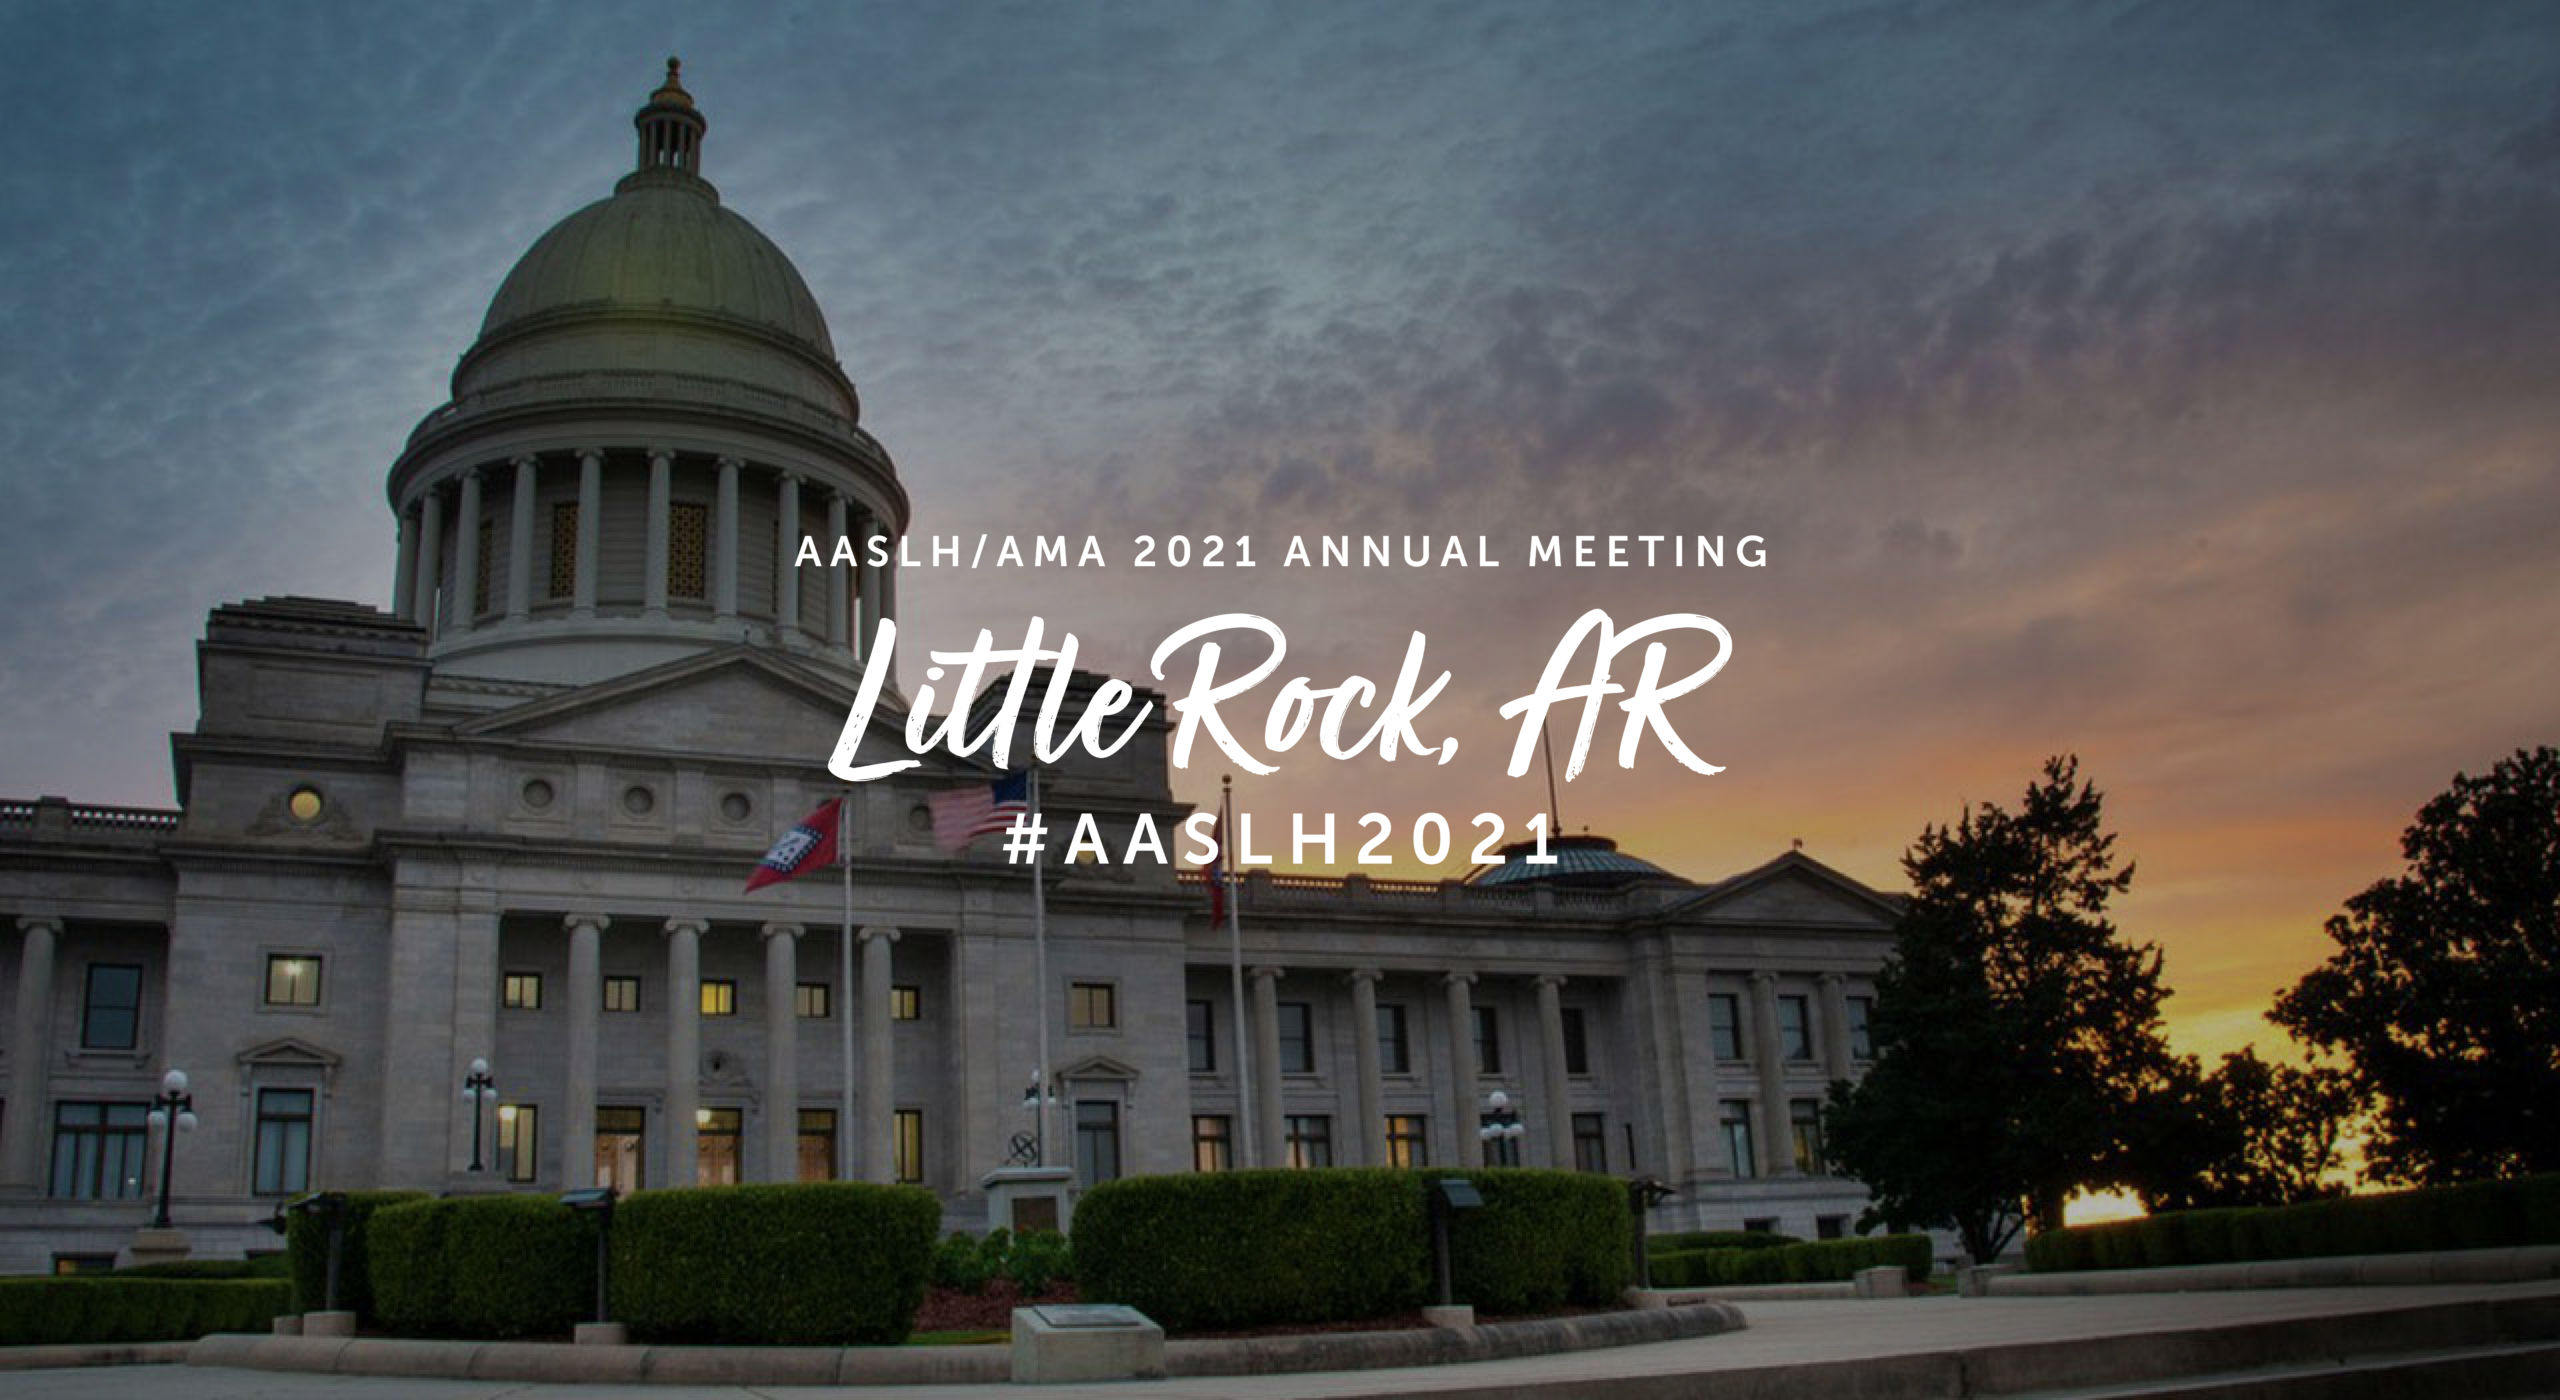 AASLH/AMA 2021 Annual Meeting in Little Rock, AR